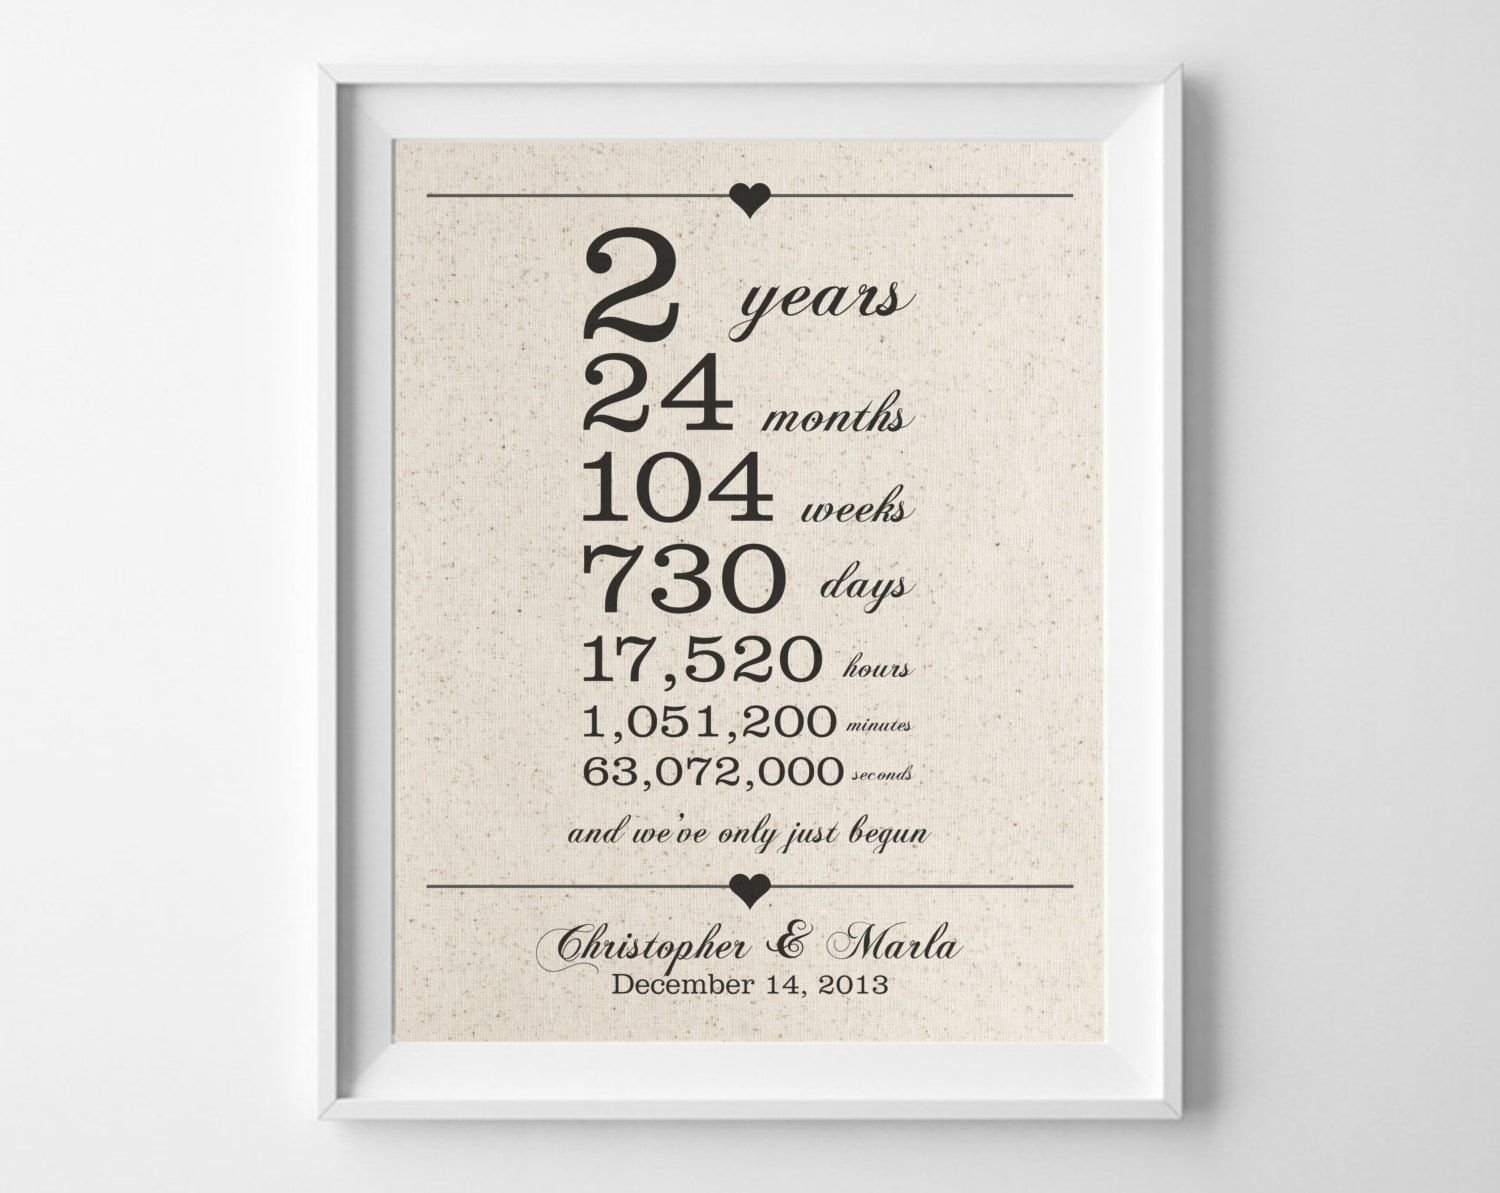 10 Lovable 2Nd Anniversary Gift Ideas For Her 2 years together cotton anniversary print 2nd anniversary days 2 2020